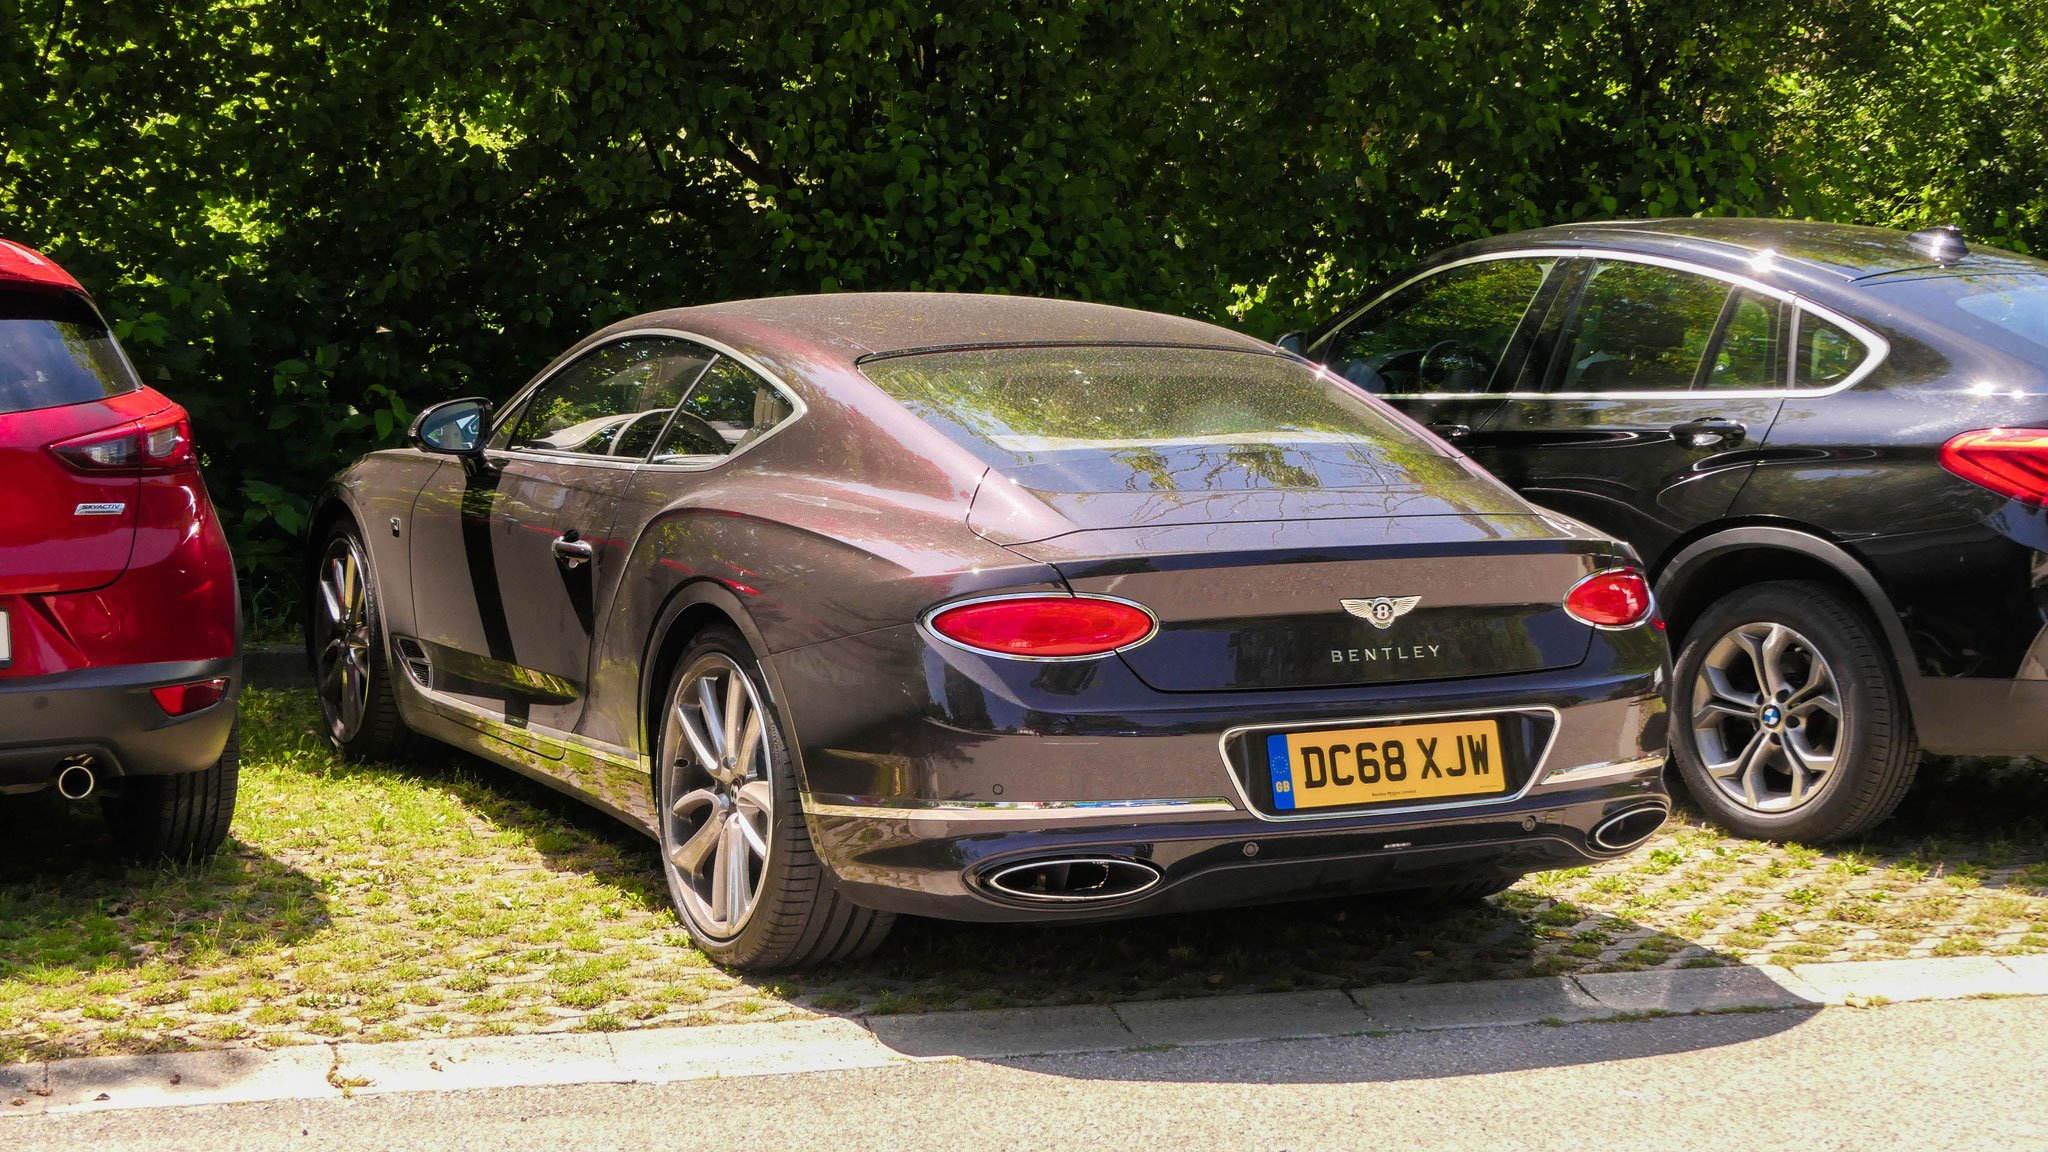 Bentley Continental GT - DC68-XJW (GB)